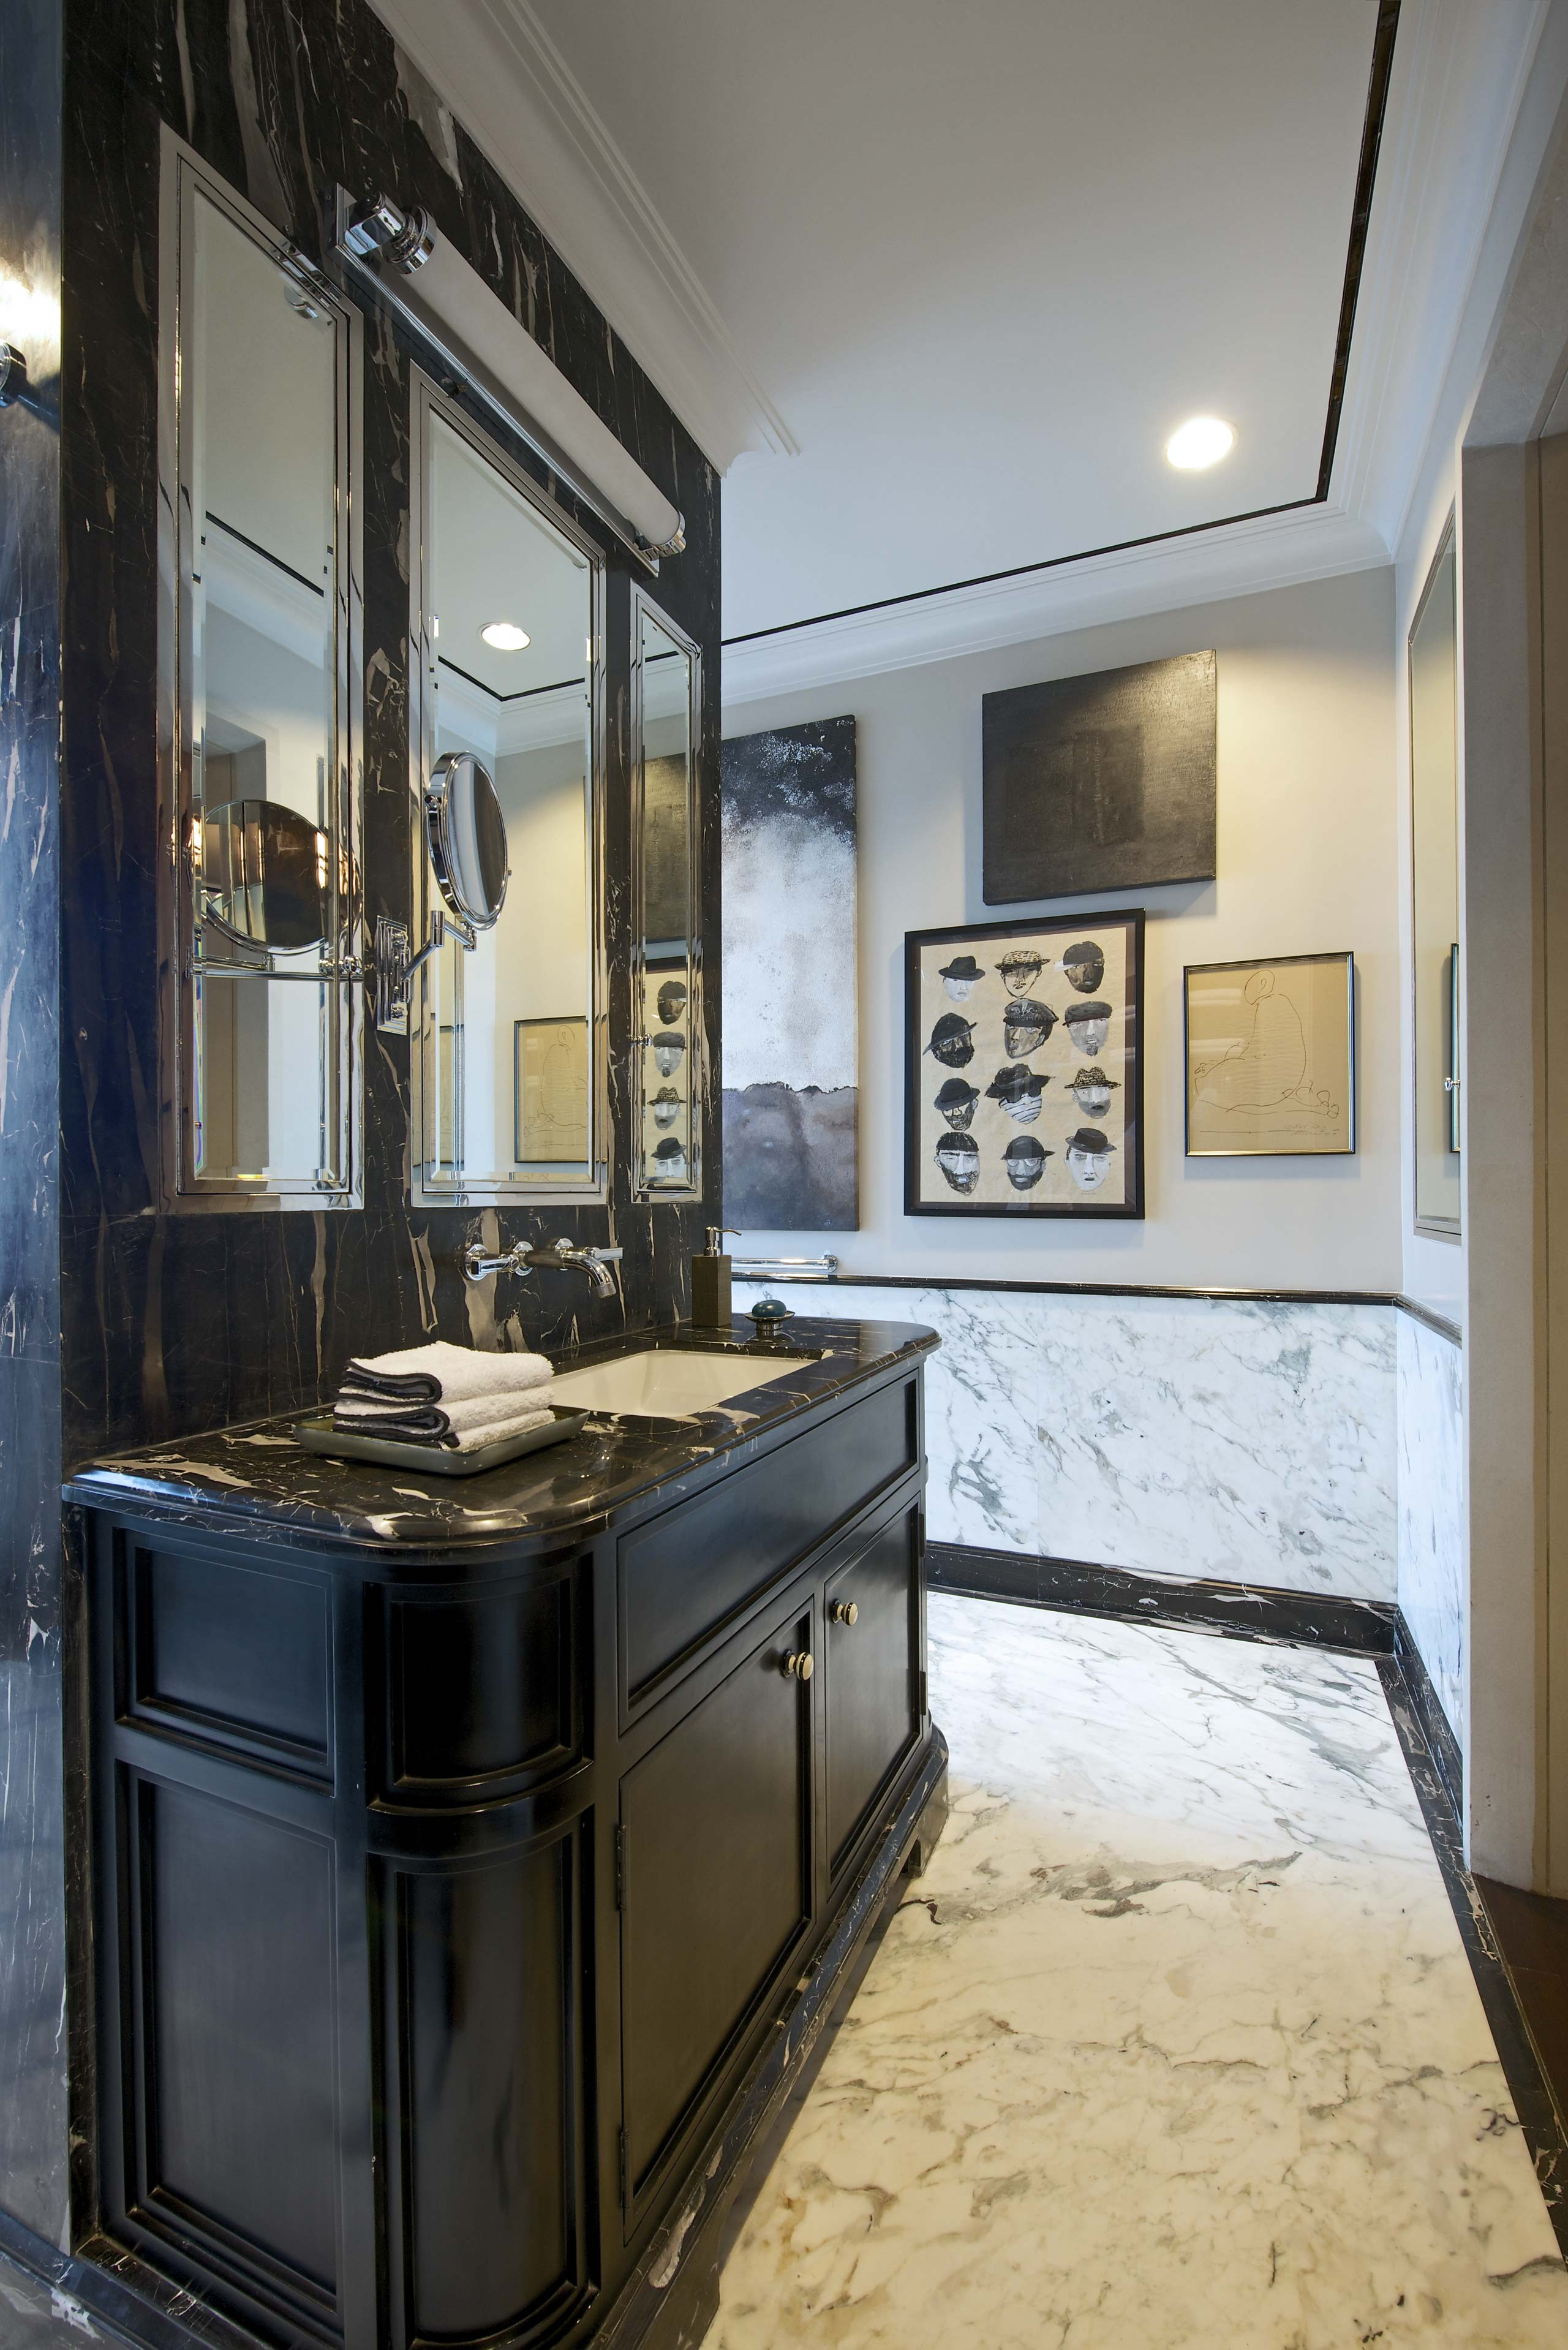 Bathroom vanity at duplex apartment interior design mumbai india